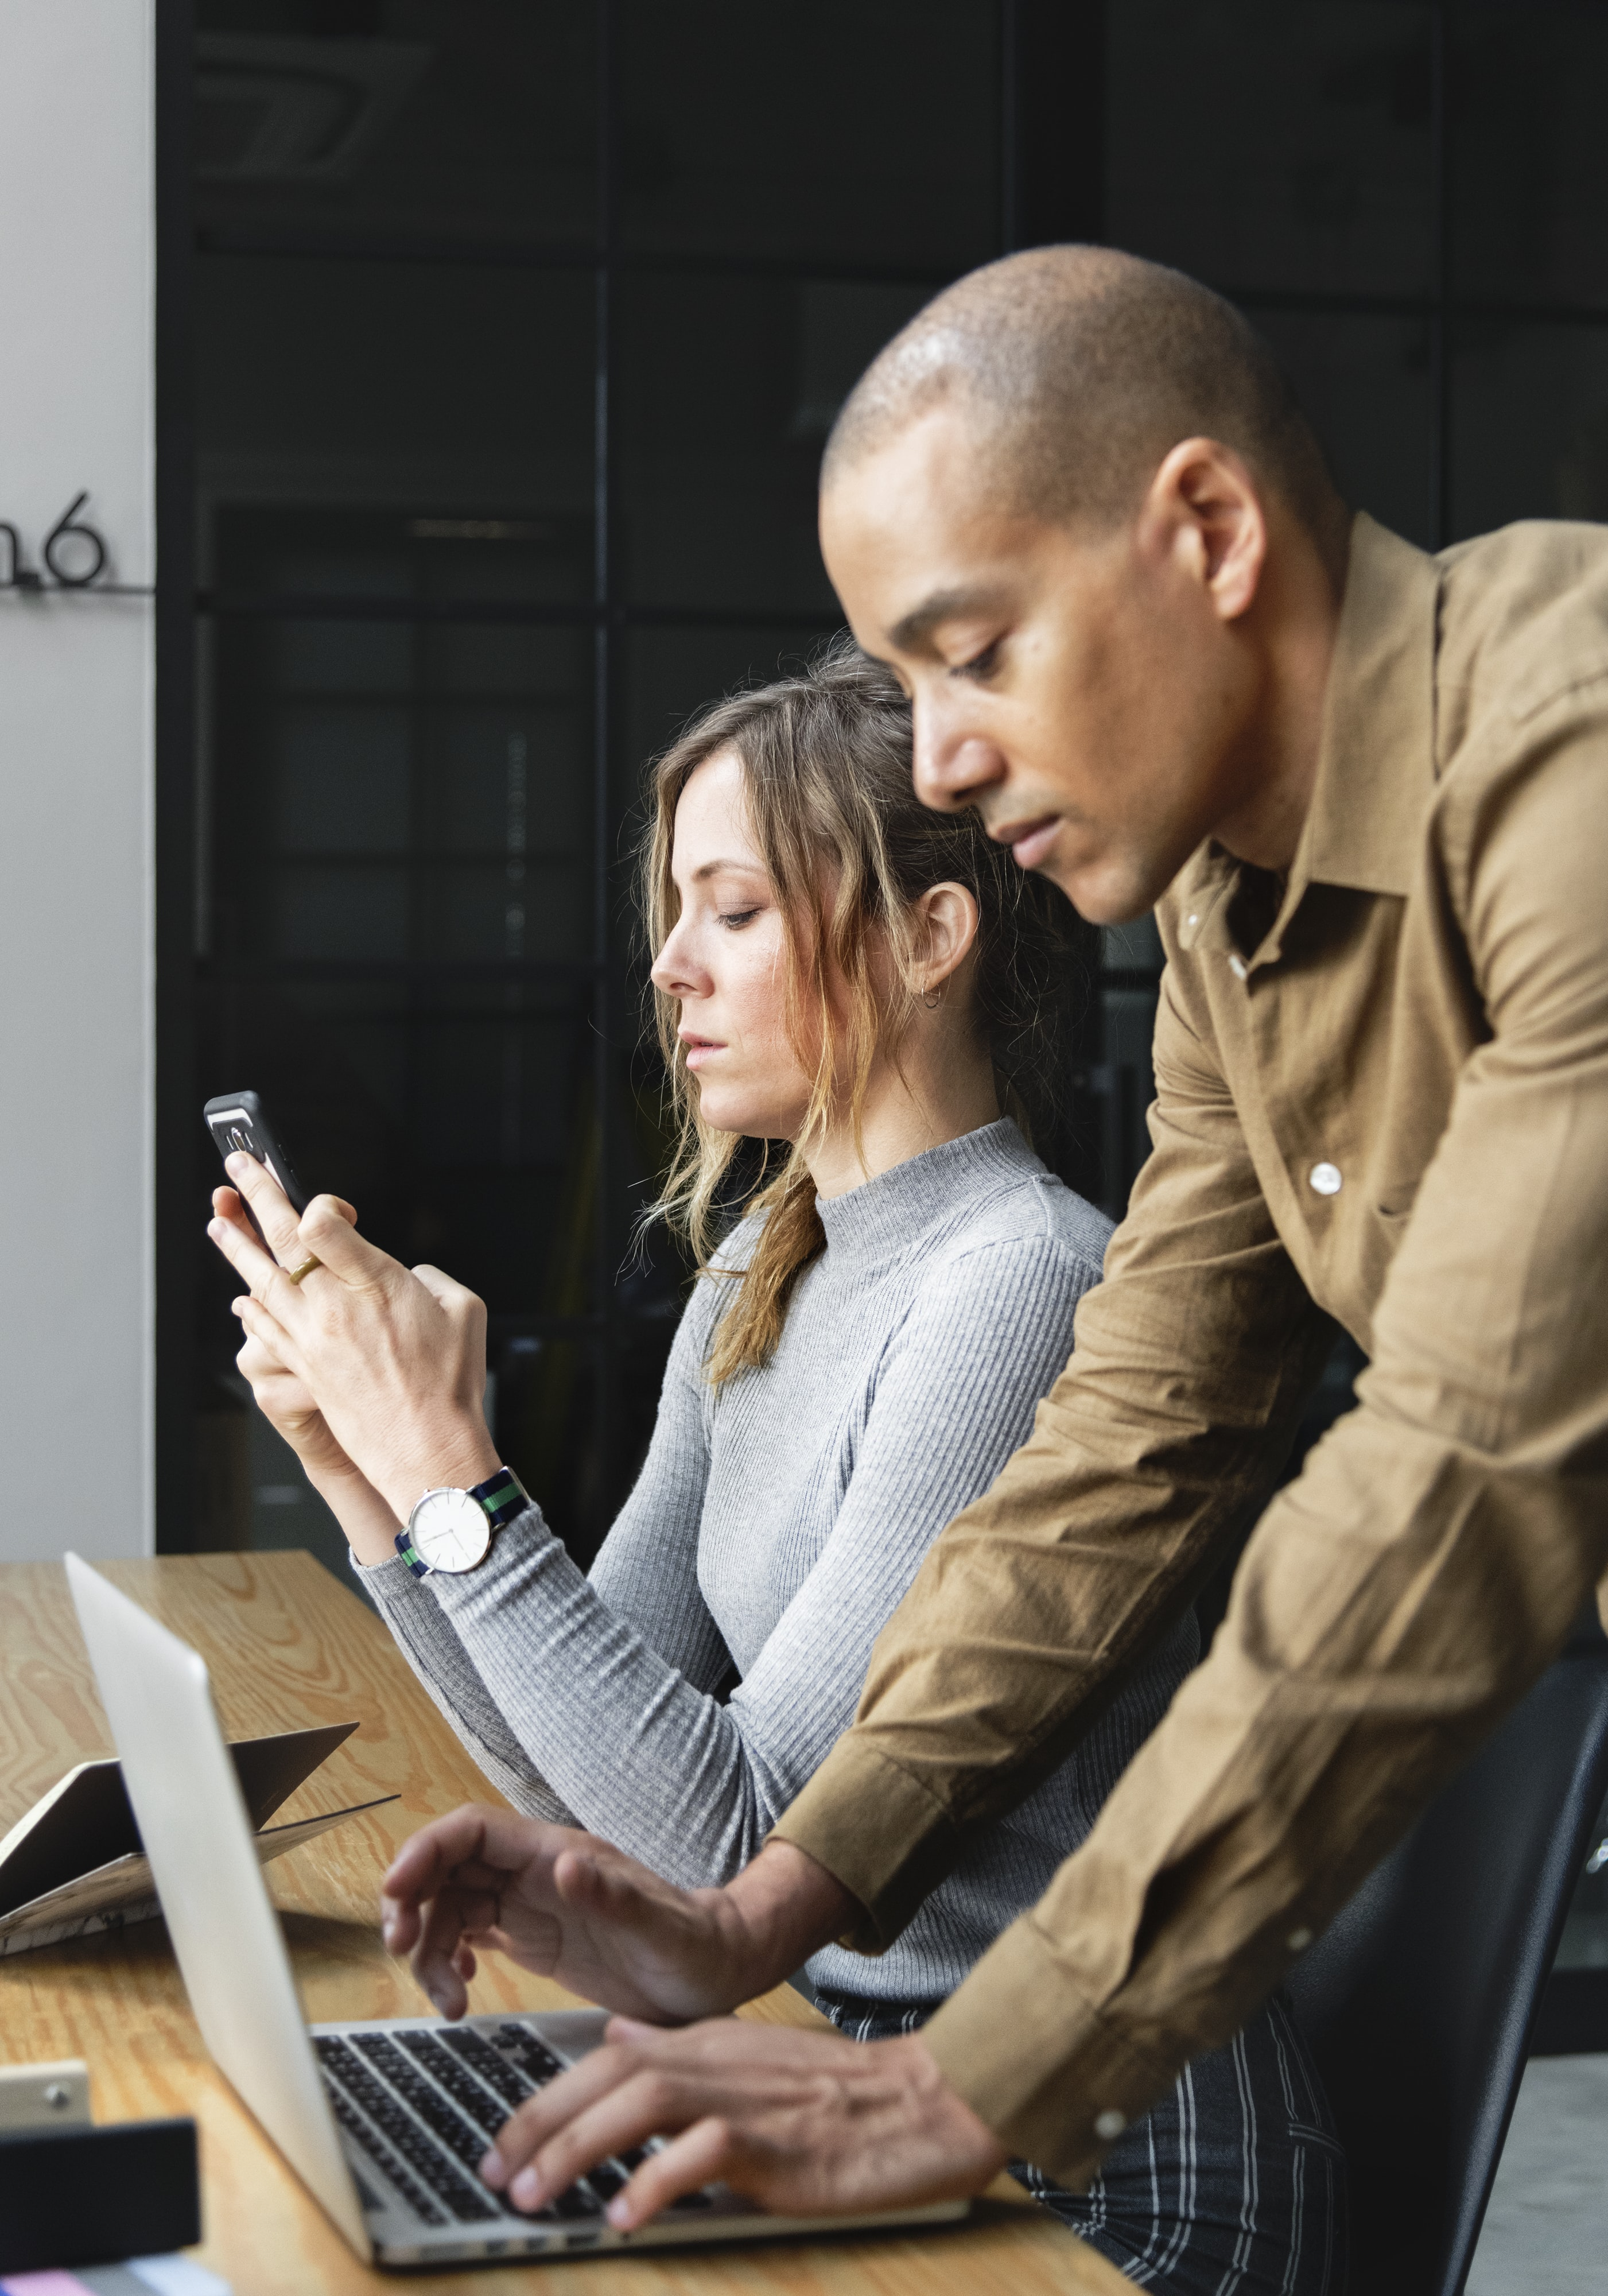 man using laptop besides woman sitting while using smartphone